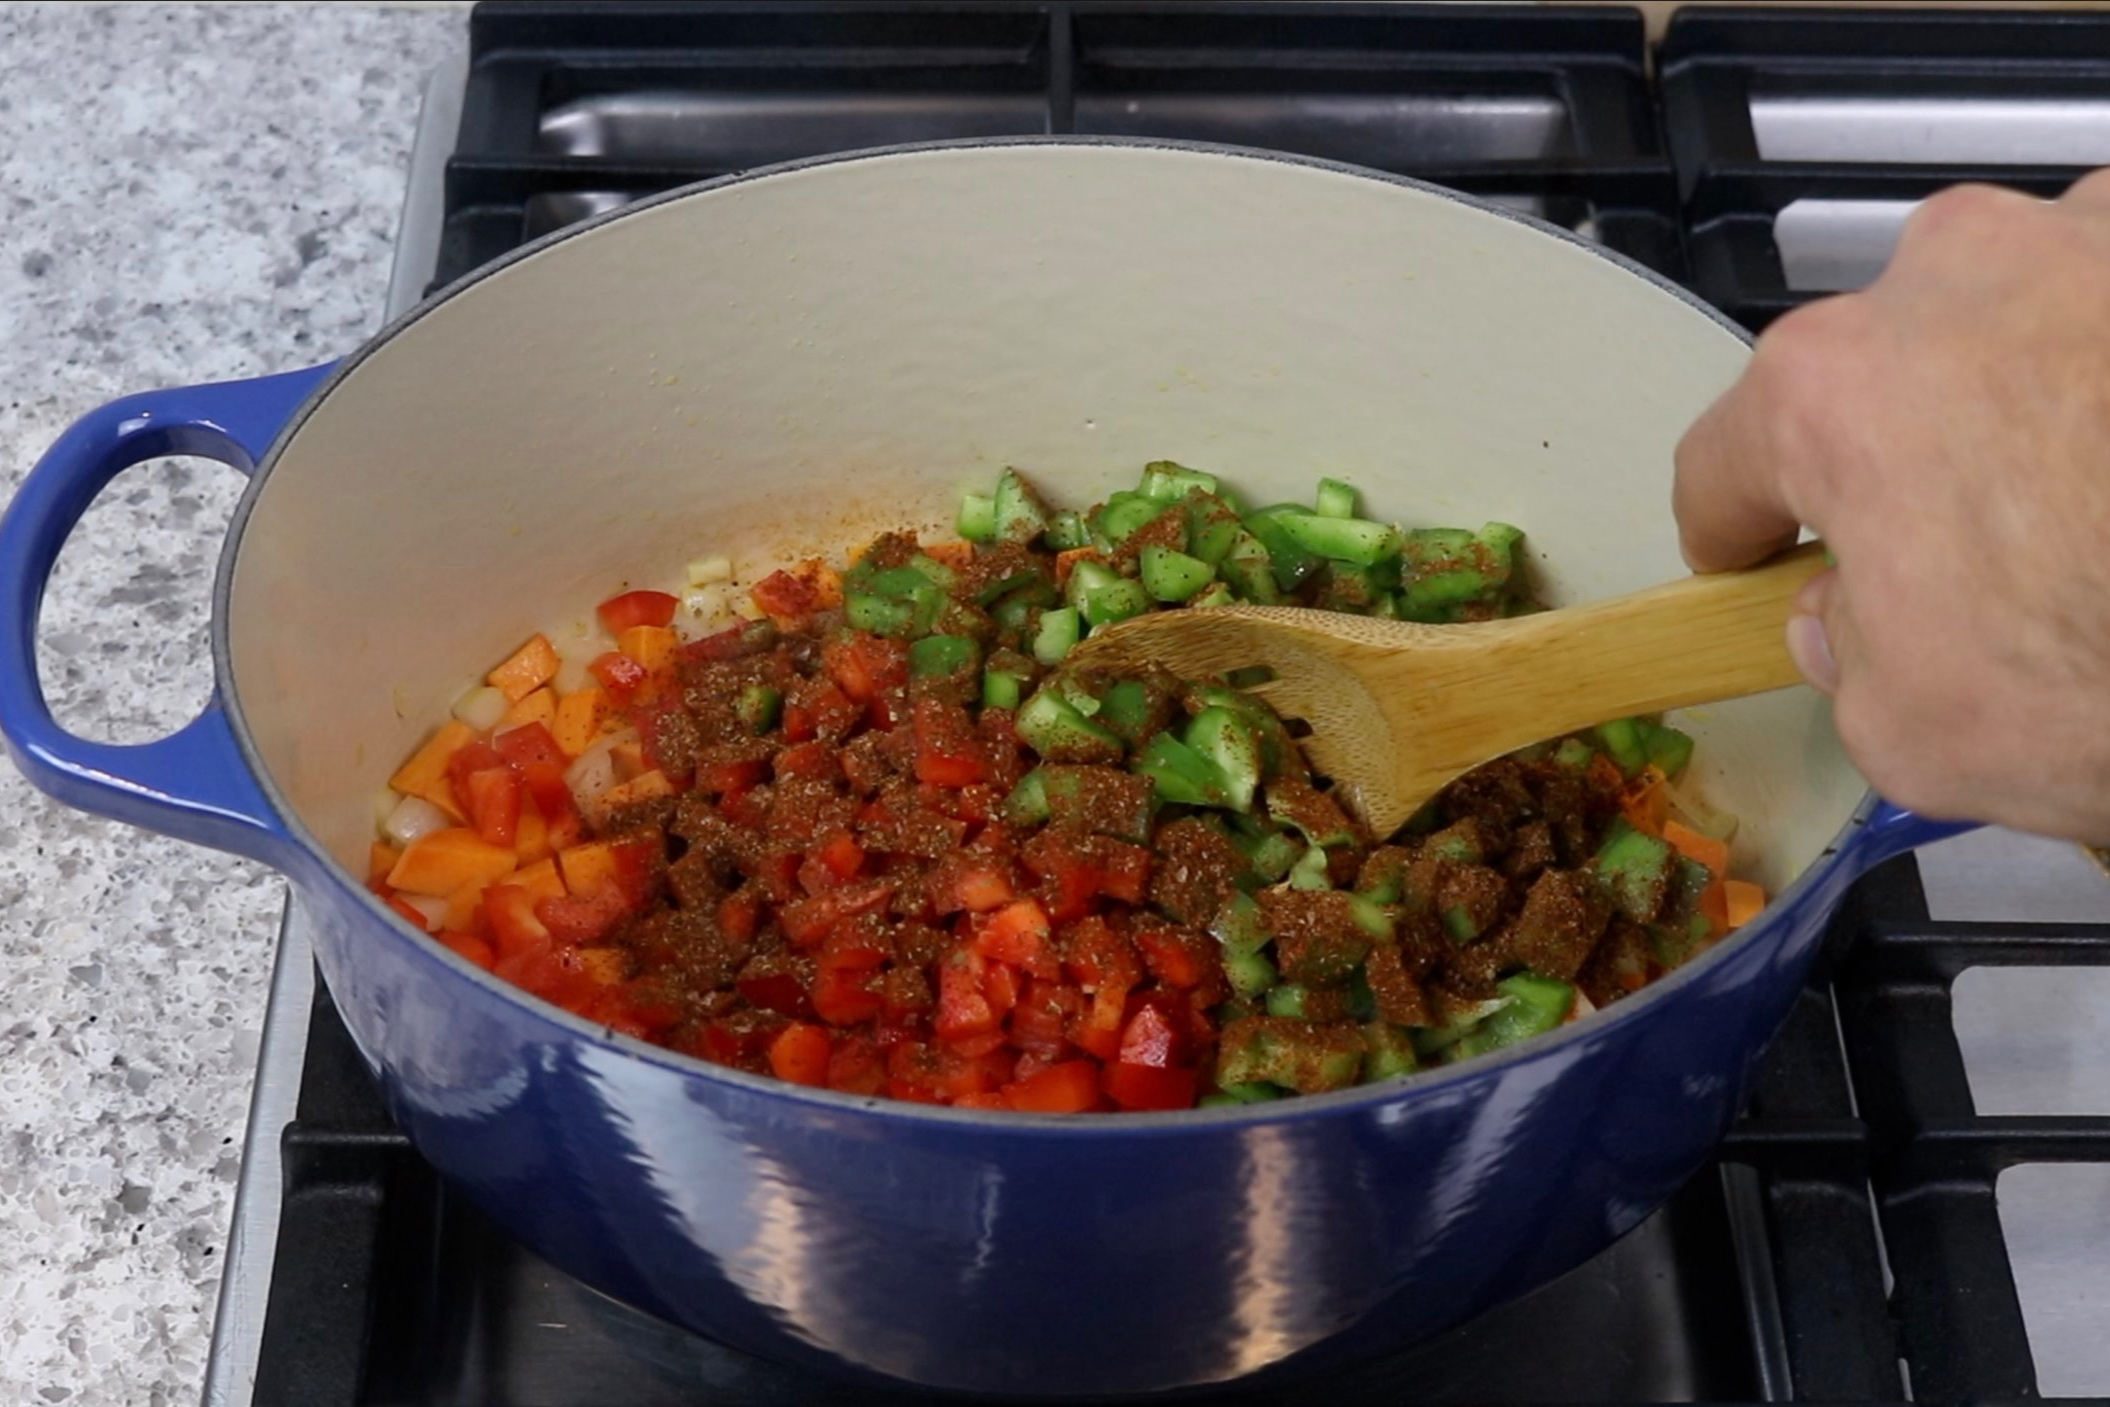 3. Add the garlic, red and green bell peppers, and Mexican spice mixture. Sauté for 3 minutes. -